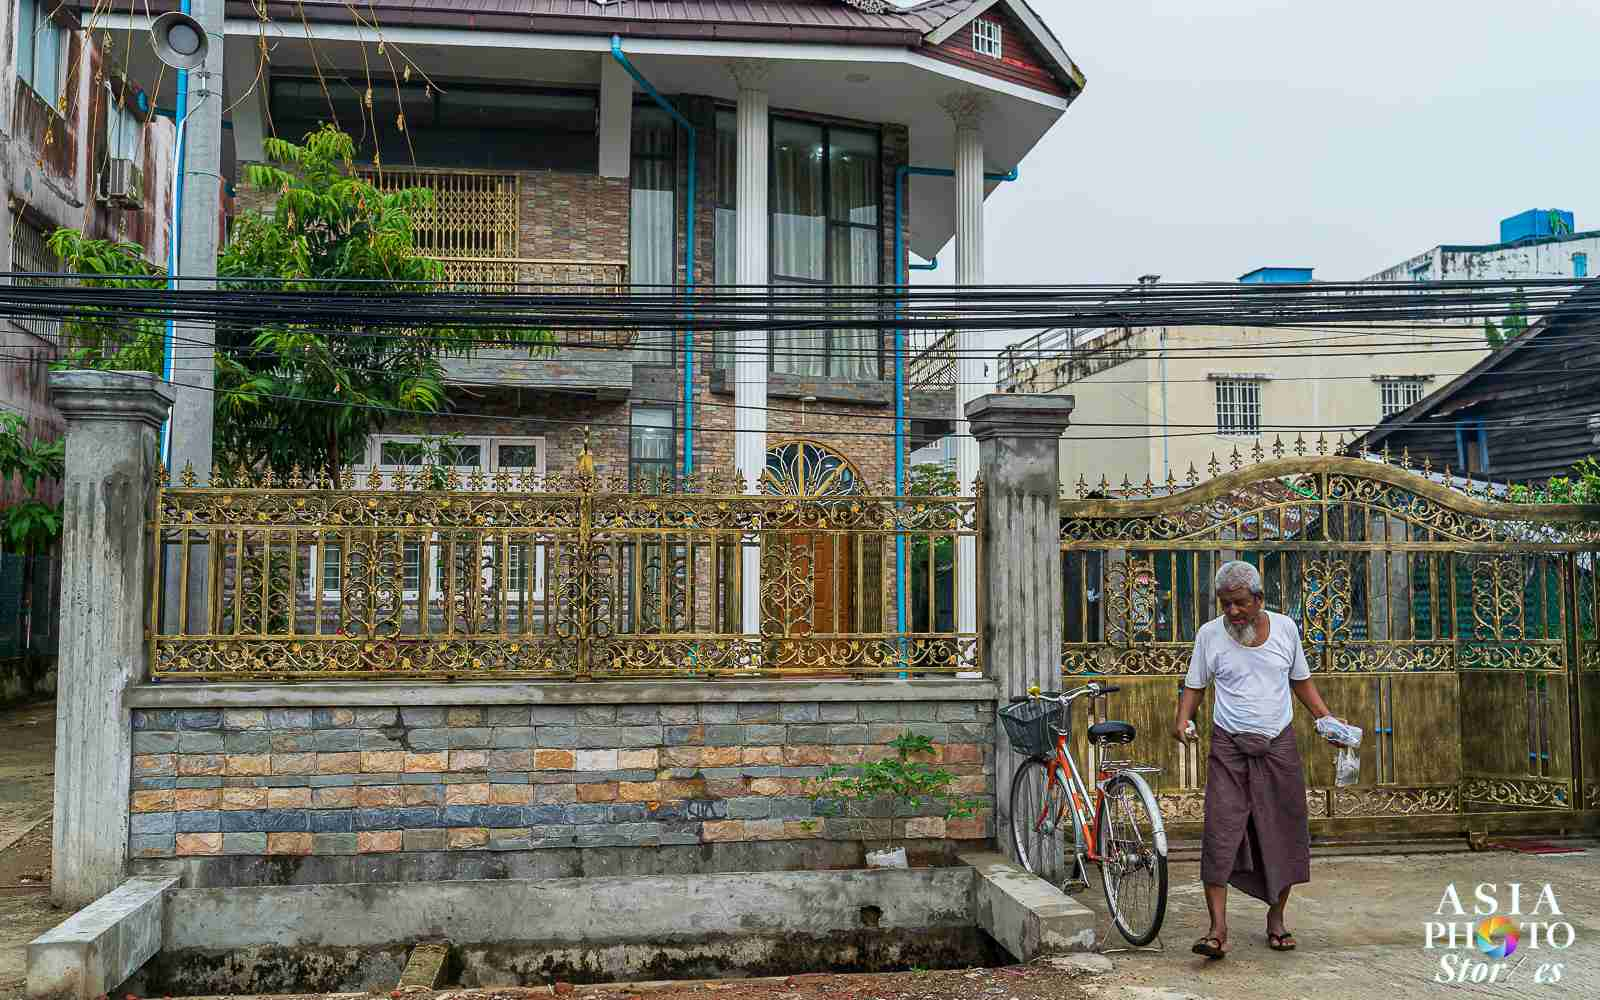 A man stands outside a large house near a Yangon train station.